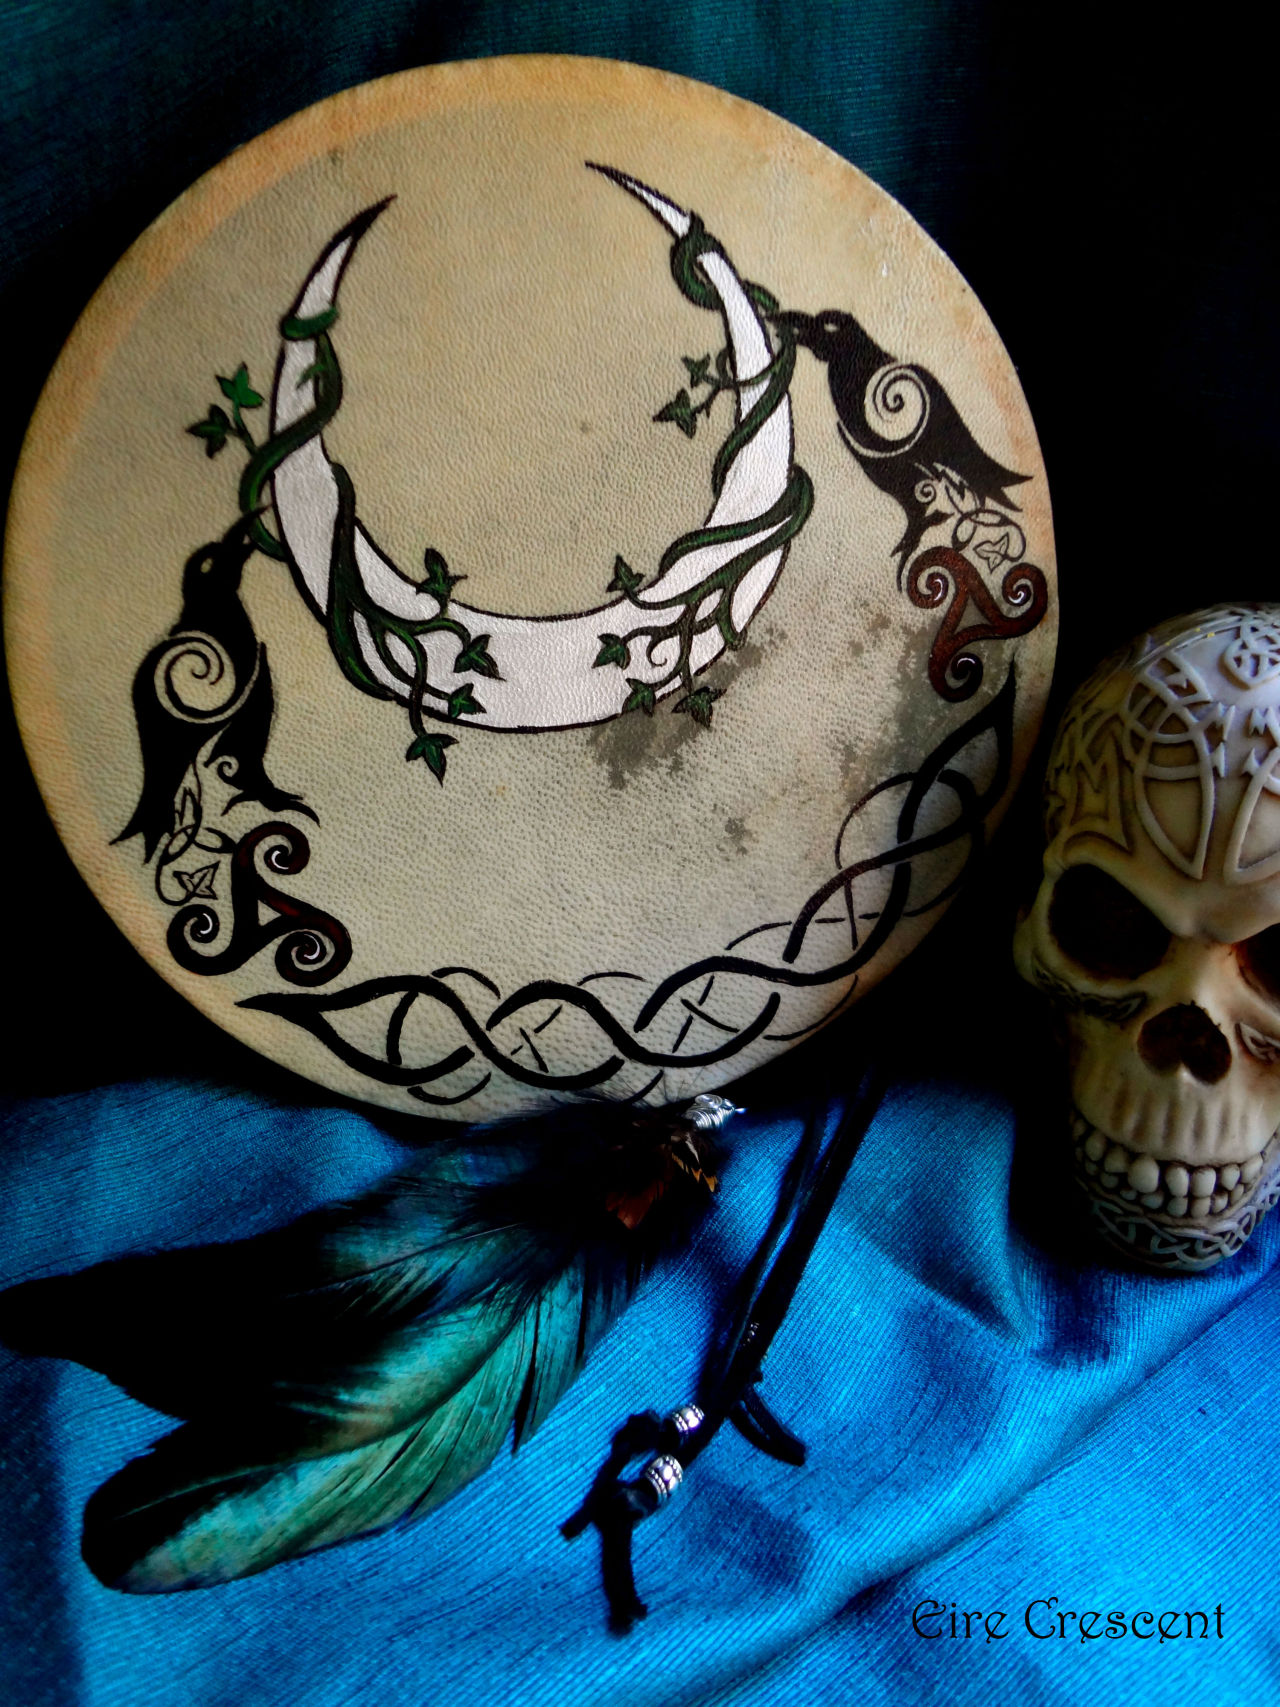 eirecrescent:  The Morrigan- Ritual Drum, here: https://www.etsy.com/listing/151099216/the-morrigan-ritual-drum ——-Morrigan (or Morrigu) was the shape-shifting Celtic Goddess of War, Fate and Death. She also presided over rivers, lakes and fresh water, in addition to being the patroness of revenge, night, magic, and prophecy. She was said to hover over battlefields in the form of a raven or hooded crow and frequently foretold or influenced the outcome of the fray.